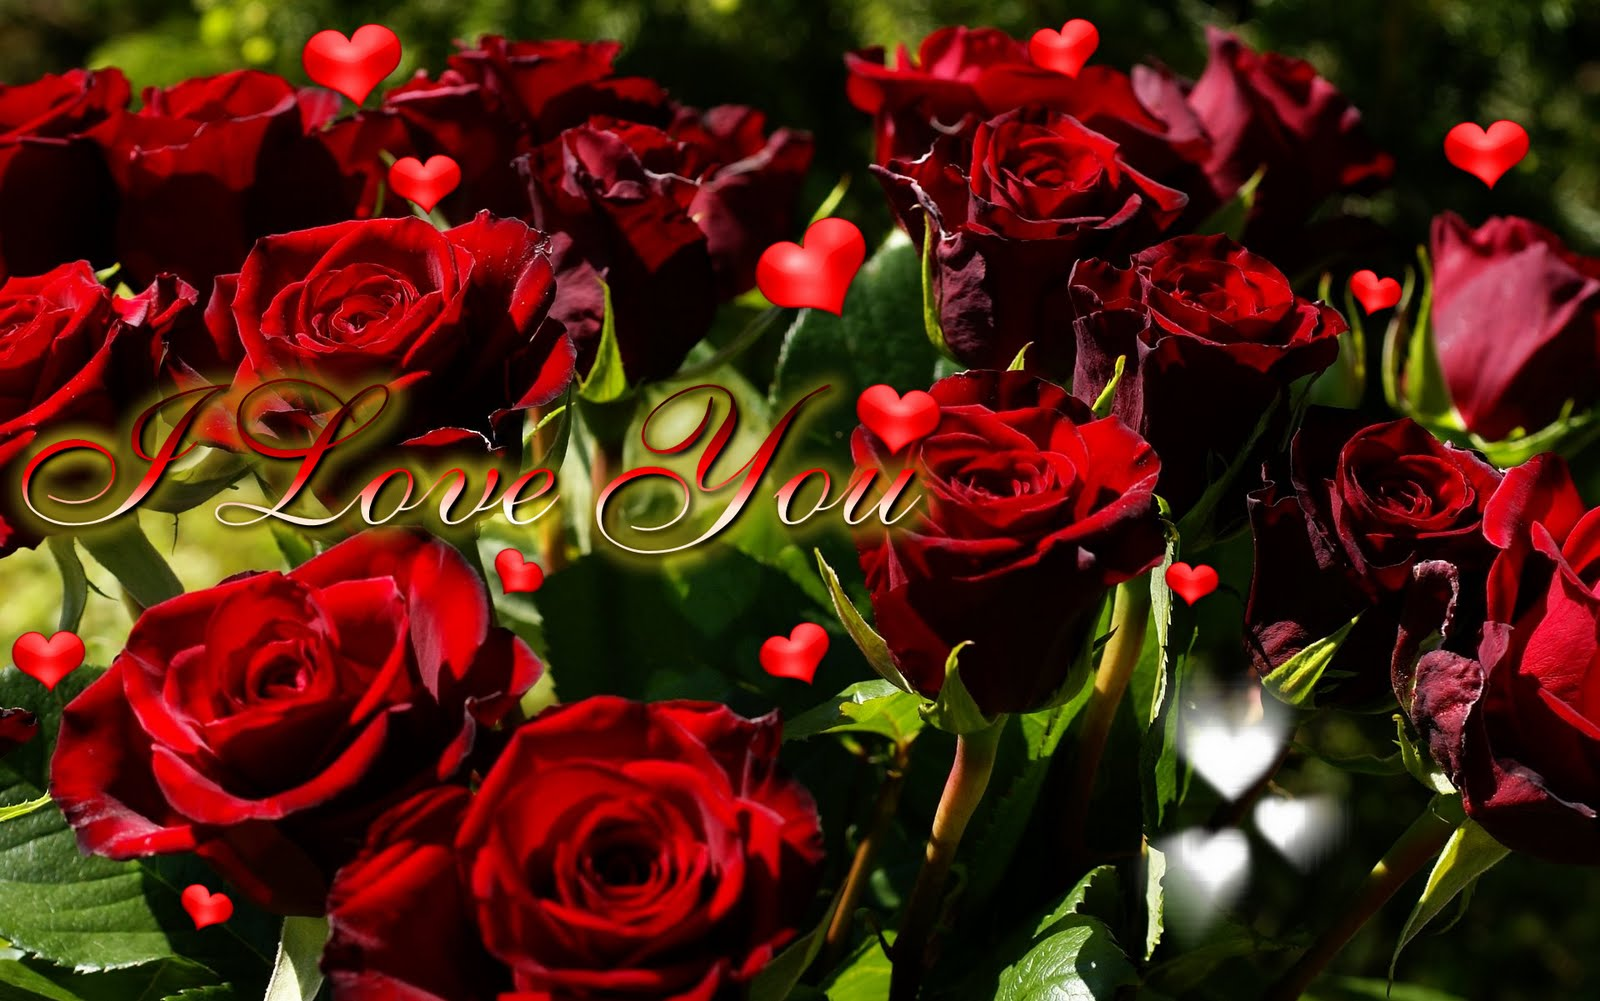 Hearts And Roses Wallpapers |Free Images Fun